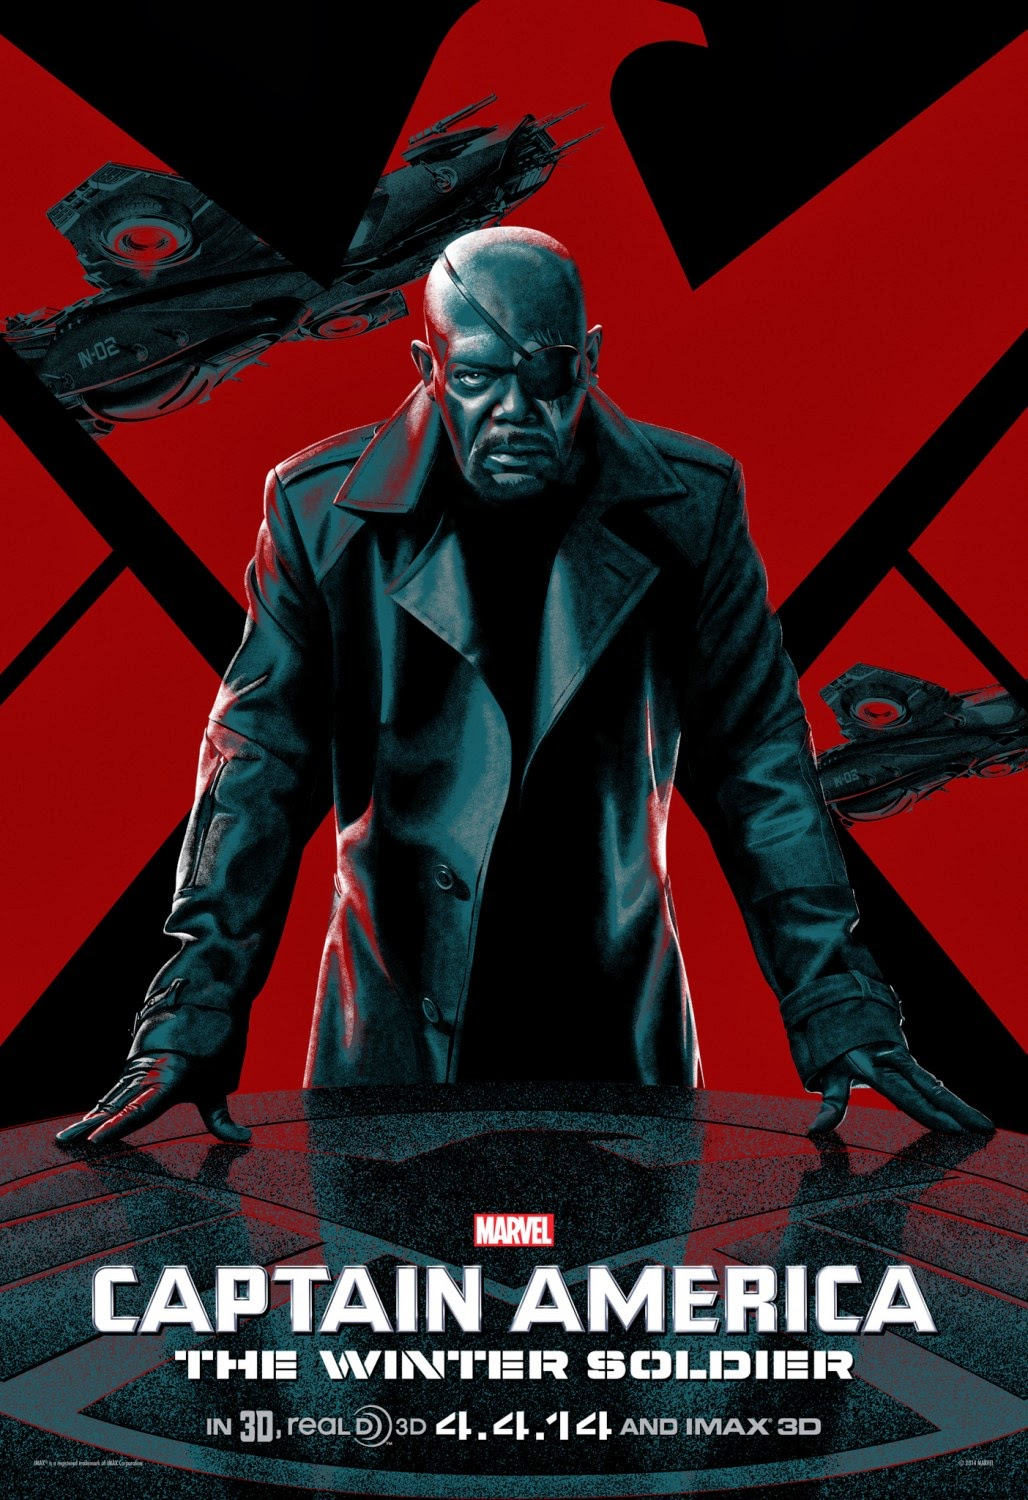 Captain America The Winter Soldier IMAX Character One Sheet Movie Poster Set - Samuel L. Jackson as Nick Fury